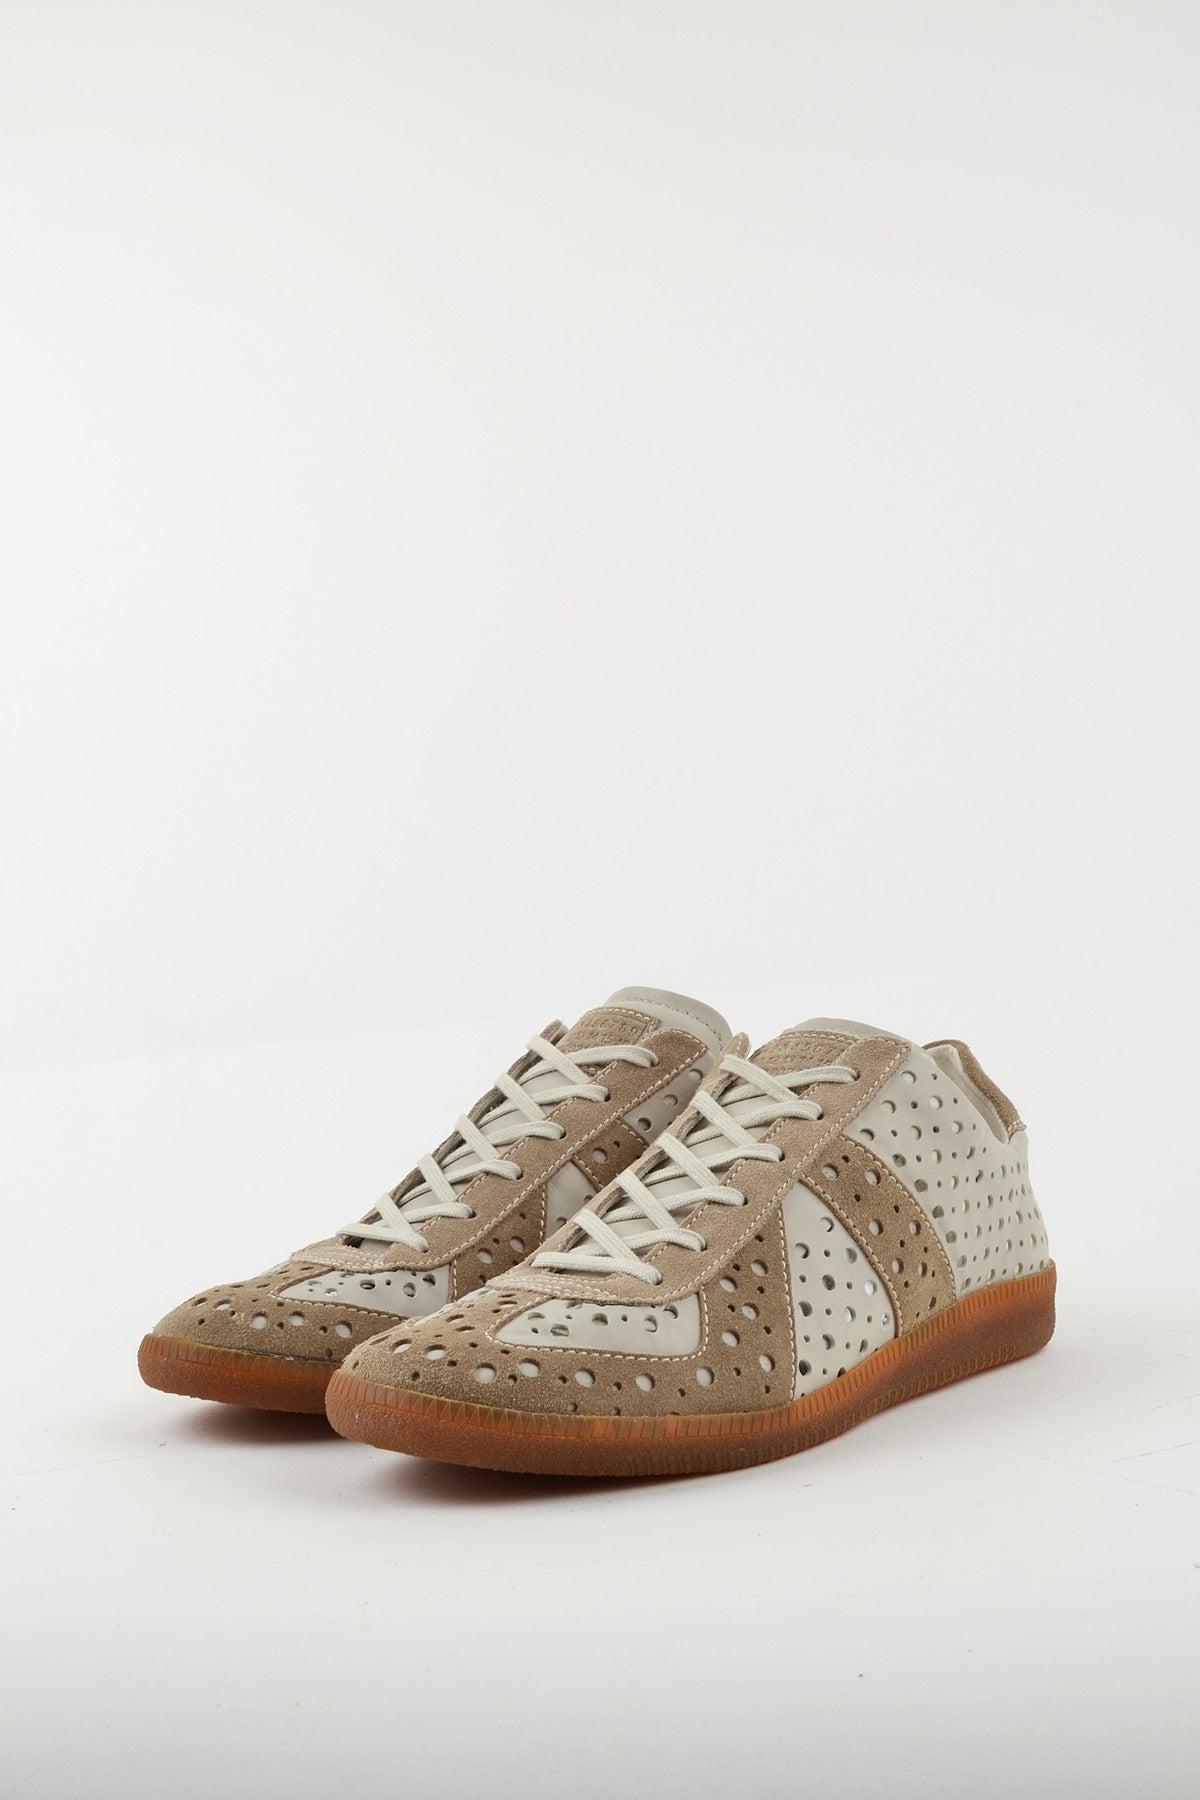 2007 S/S G.A.T. SNEAKERS IN PERFORATED LEATHER